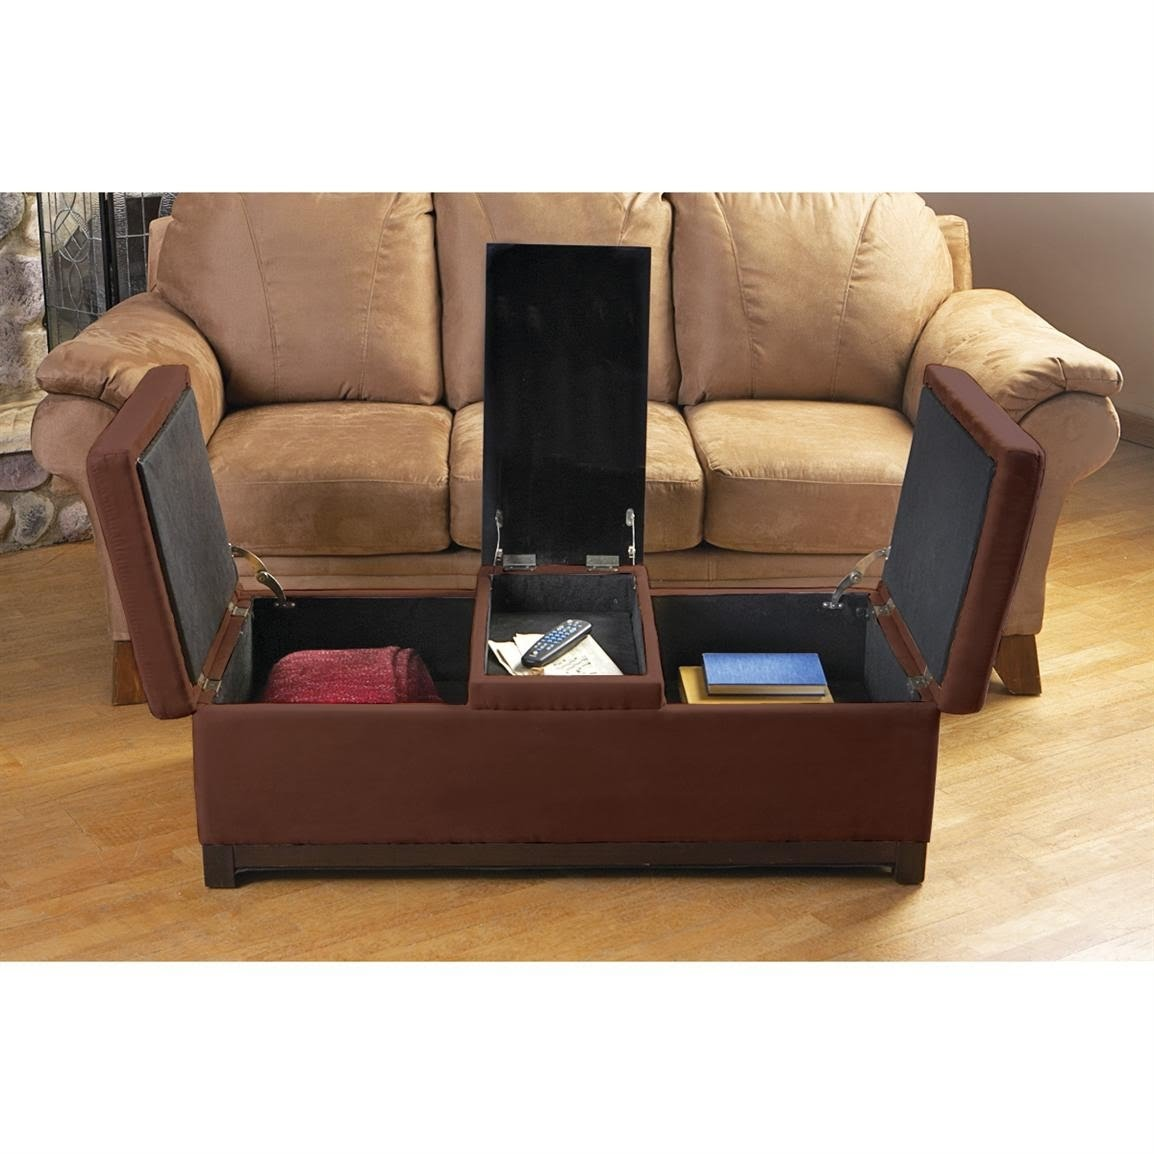 Picture of: Storage Ottoman Coffee Table You Ll Love In 2020 Visualhunt